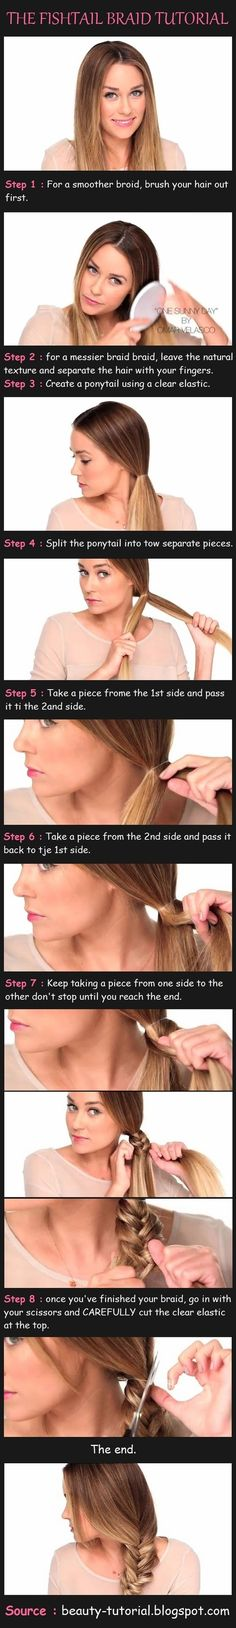 how to make a fishtail braid.... *there are some spelling mistakes in the steps*